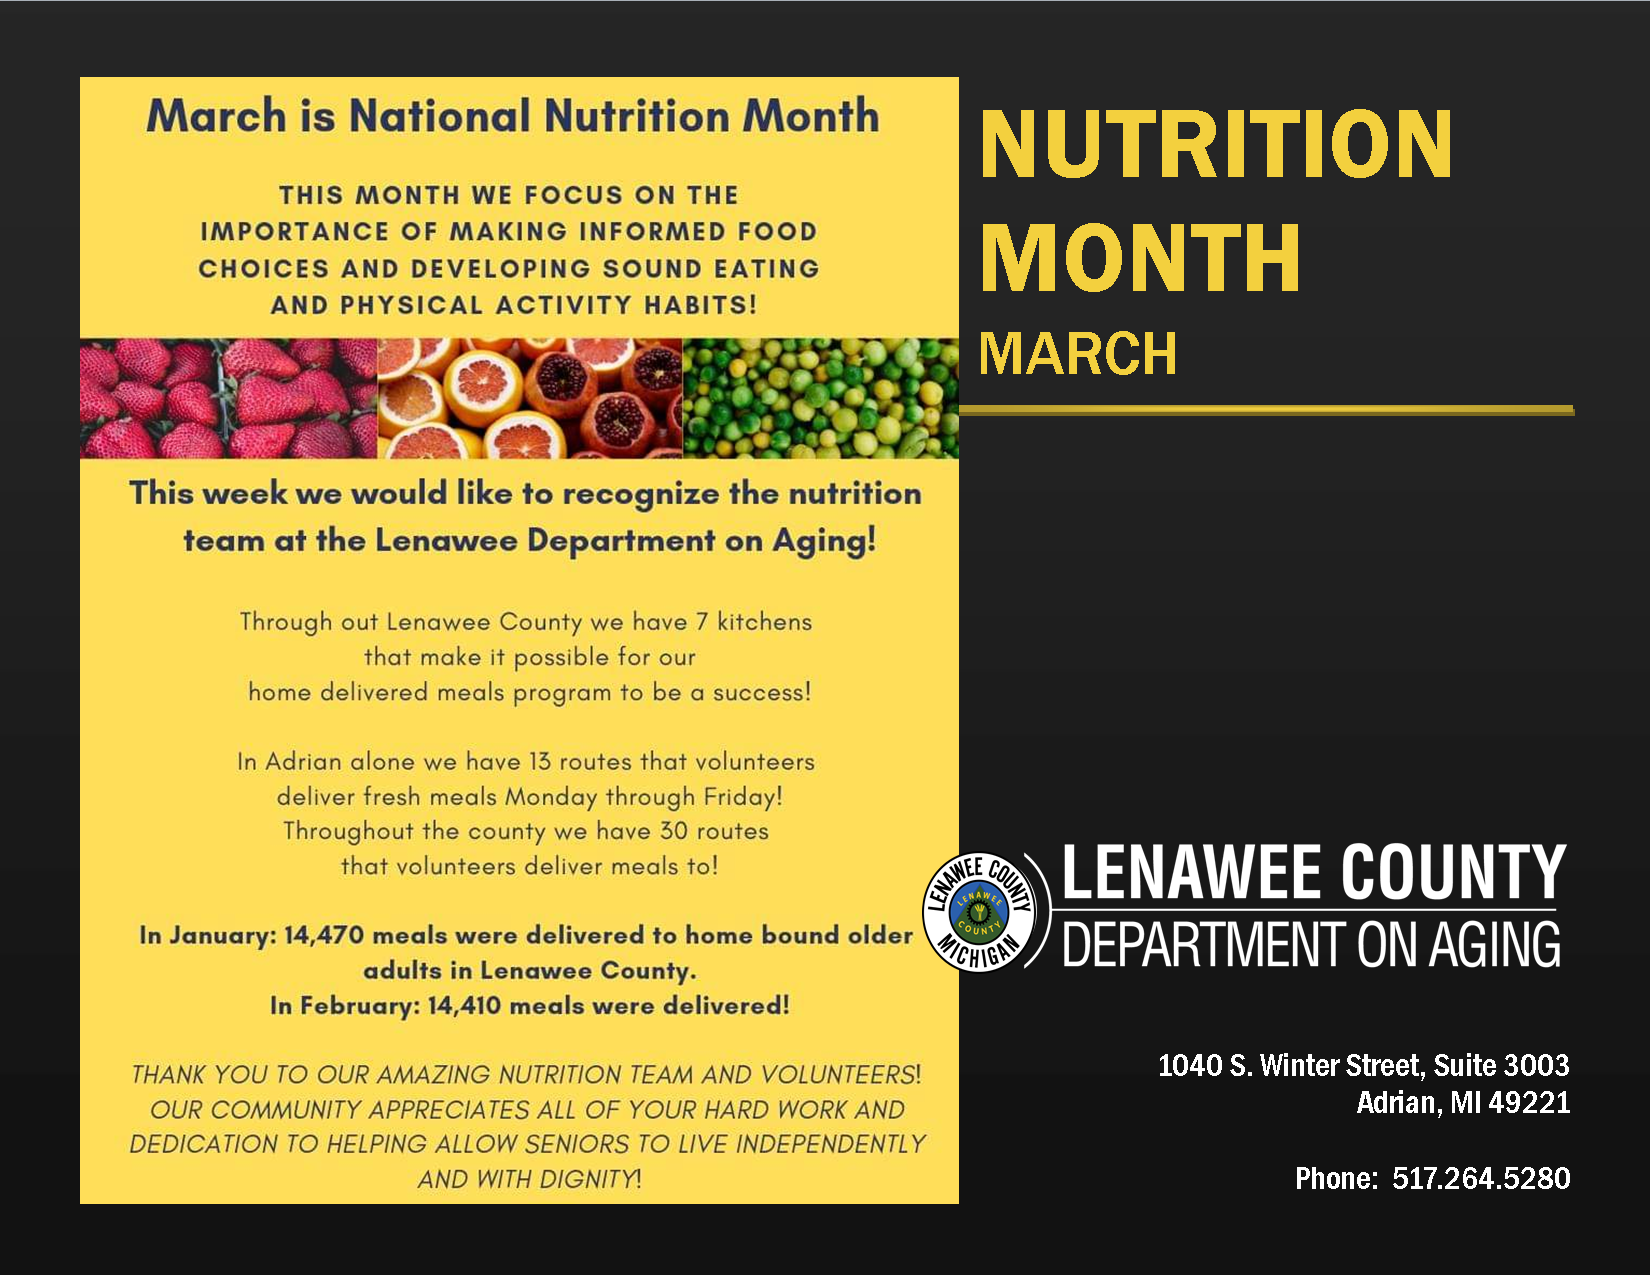 LDA nUTRITION MONTH